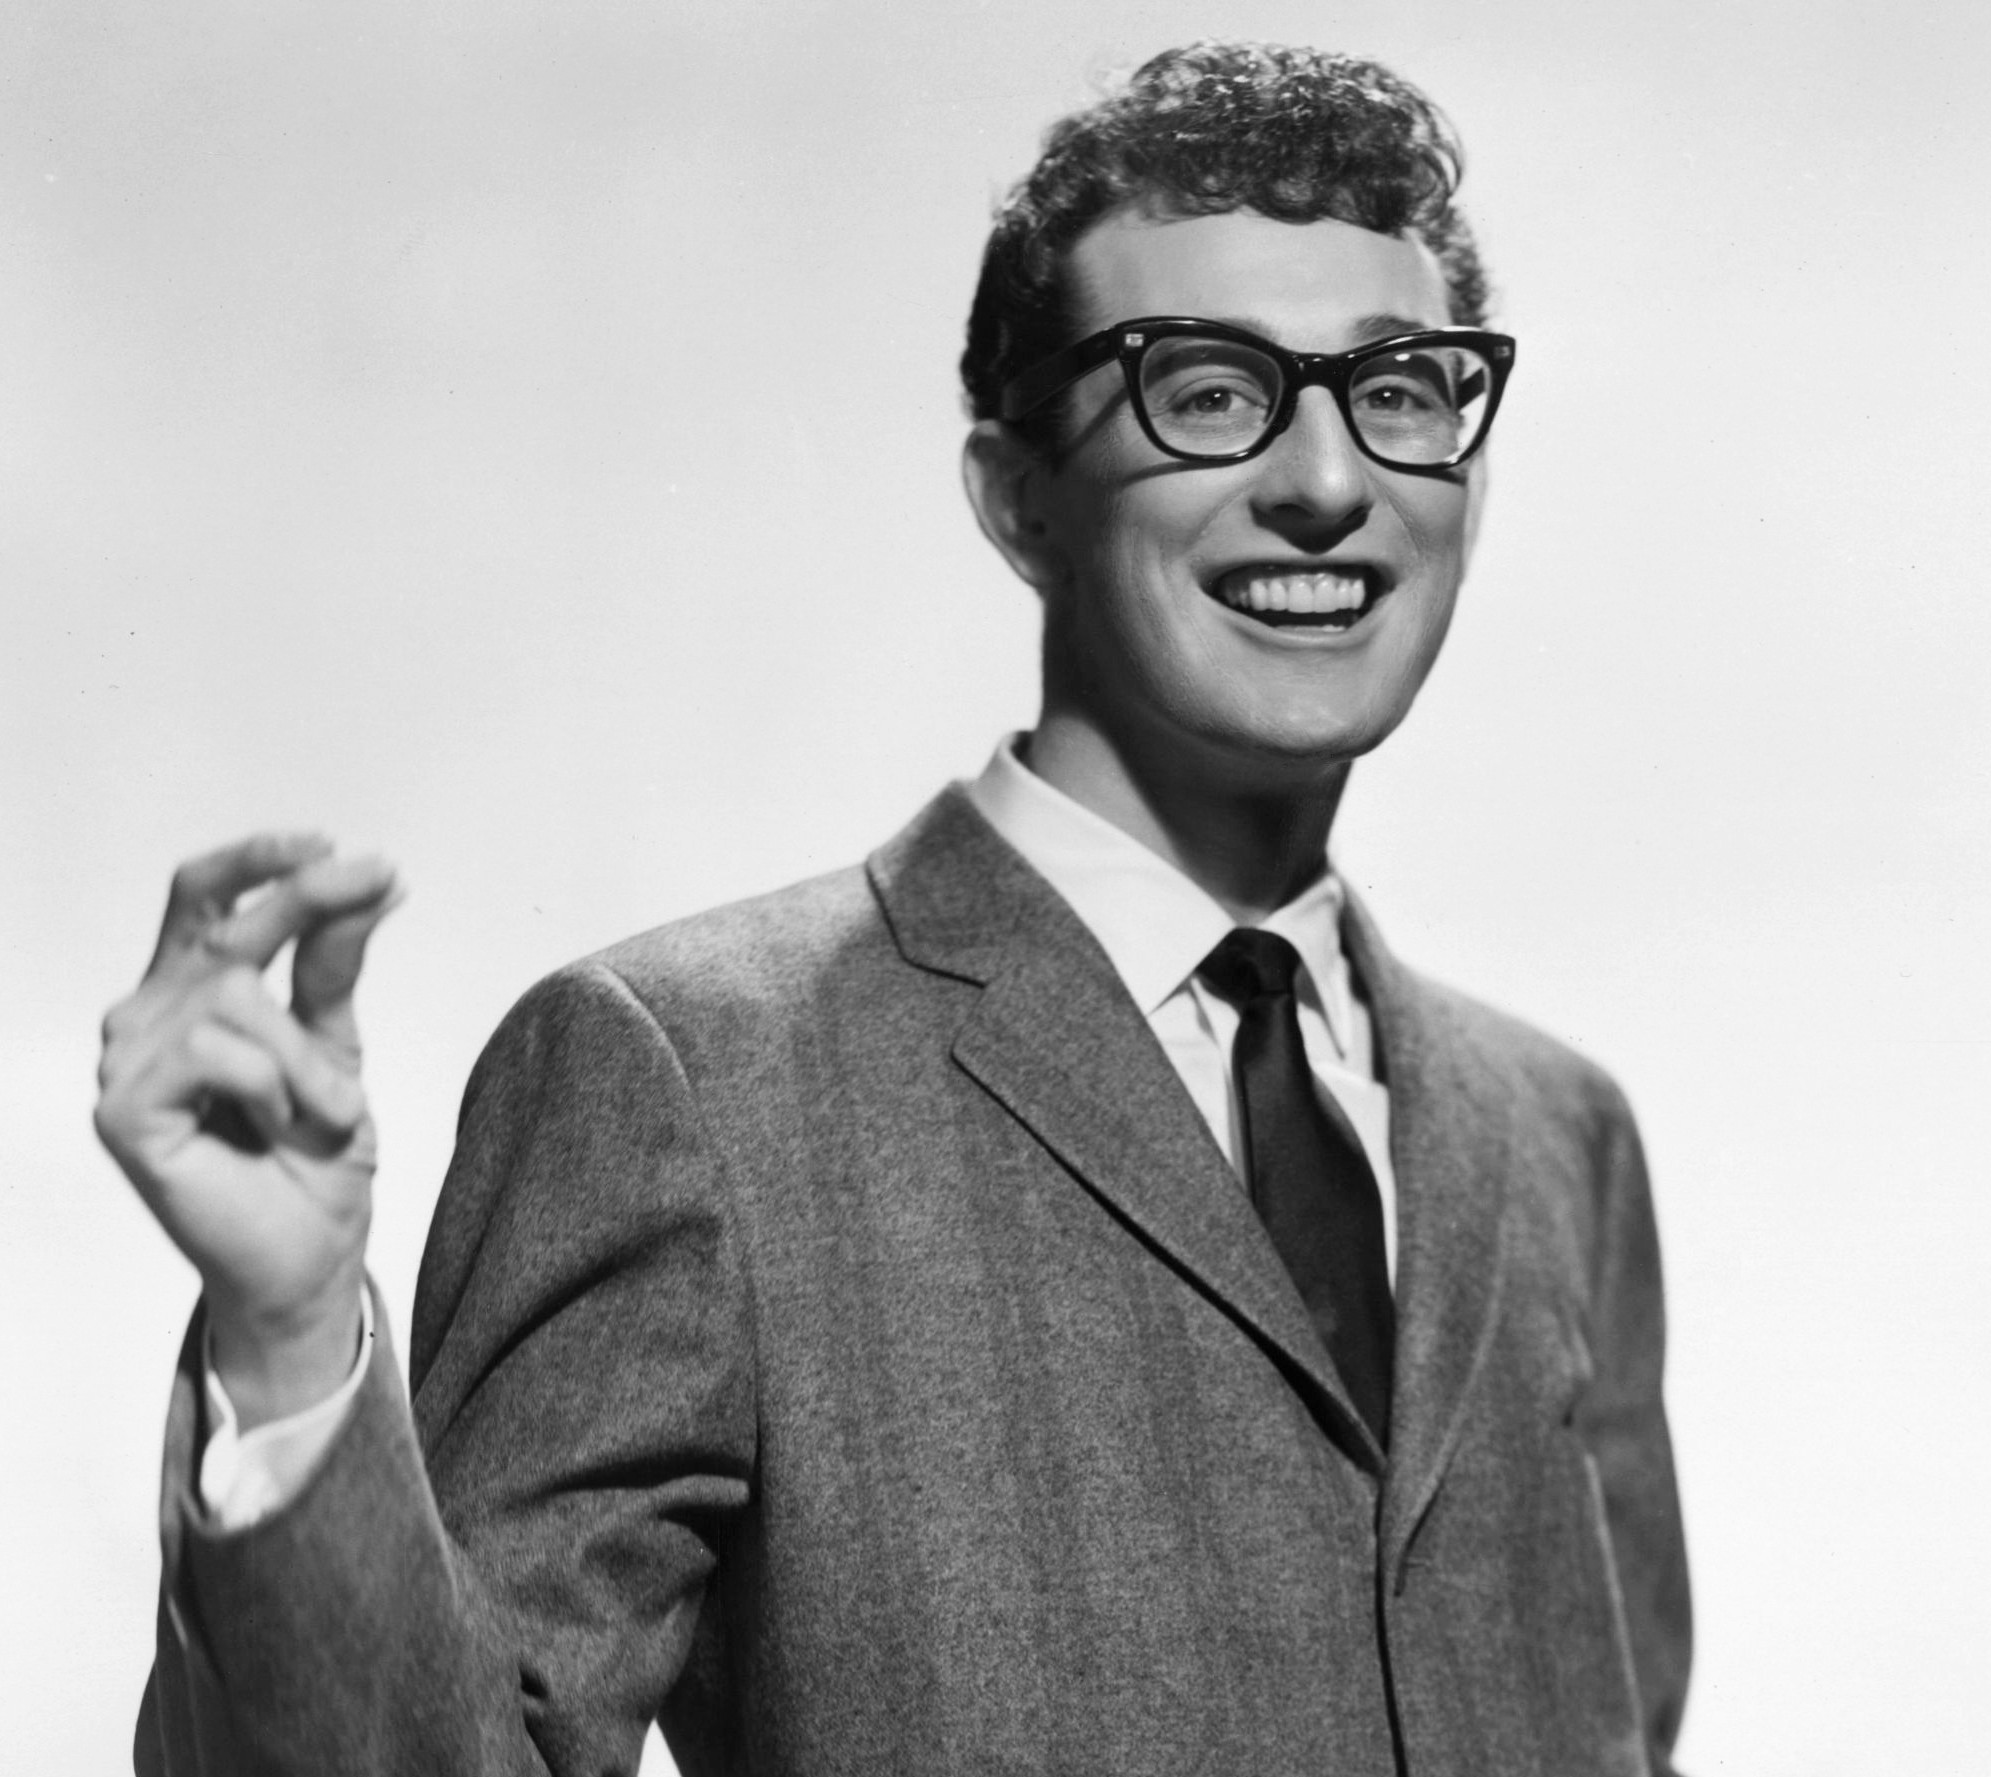 Buddy Holly Facts